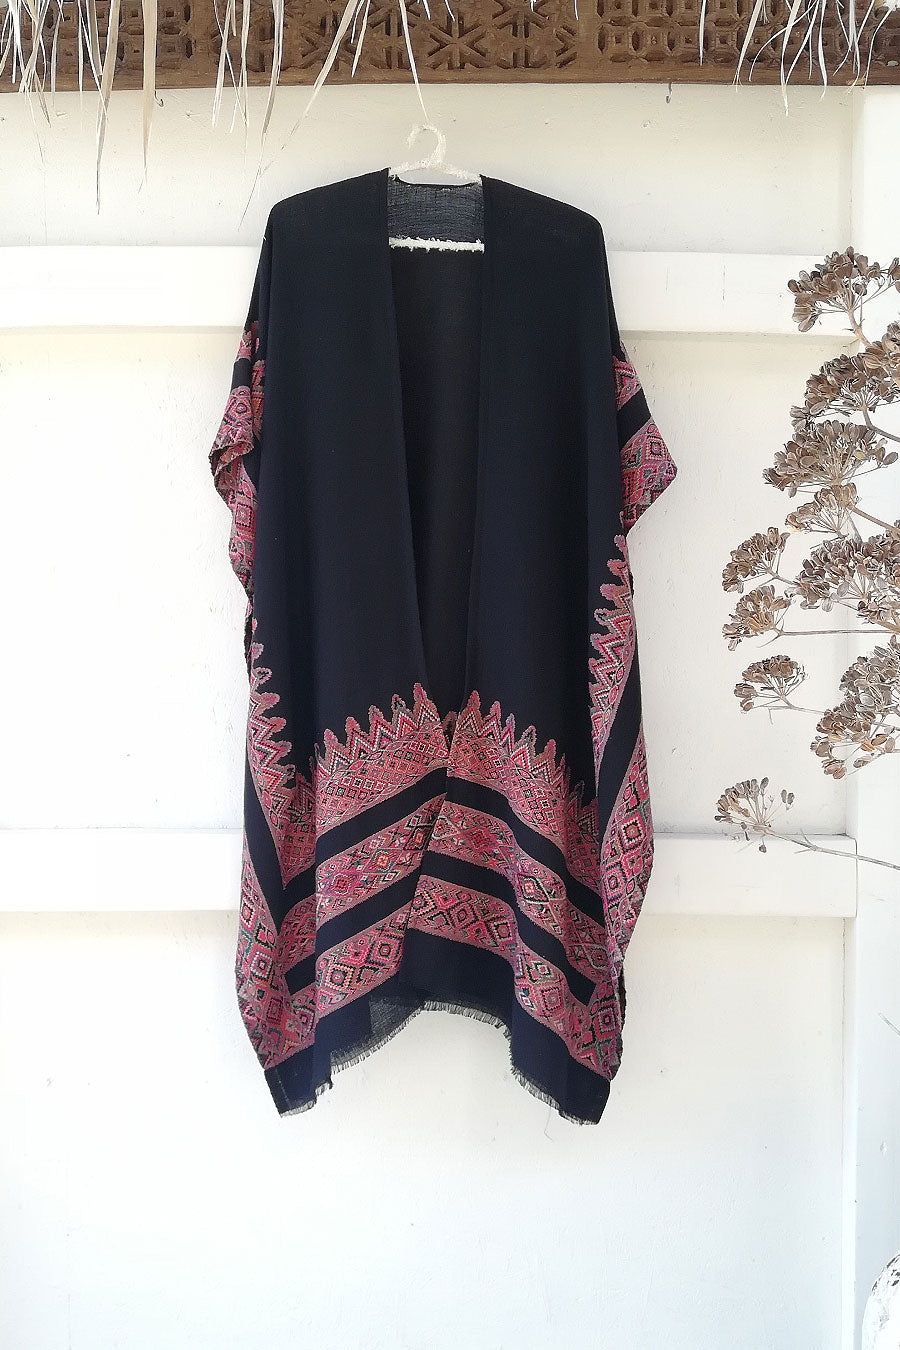 Boho Wool Poncho in Black with Colorful Detail